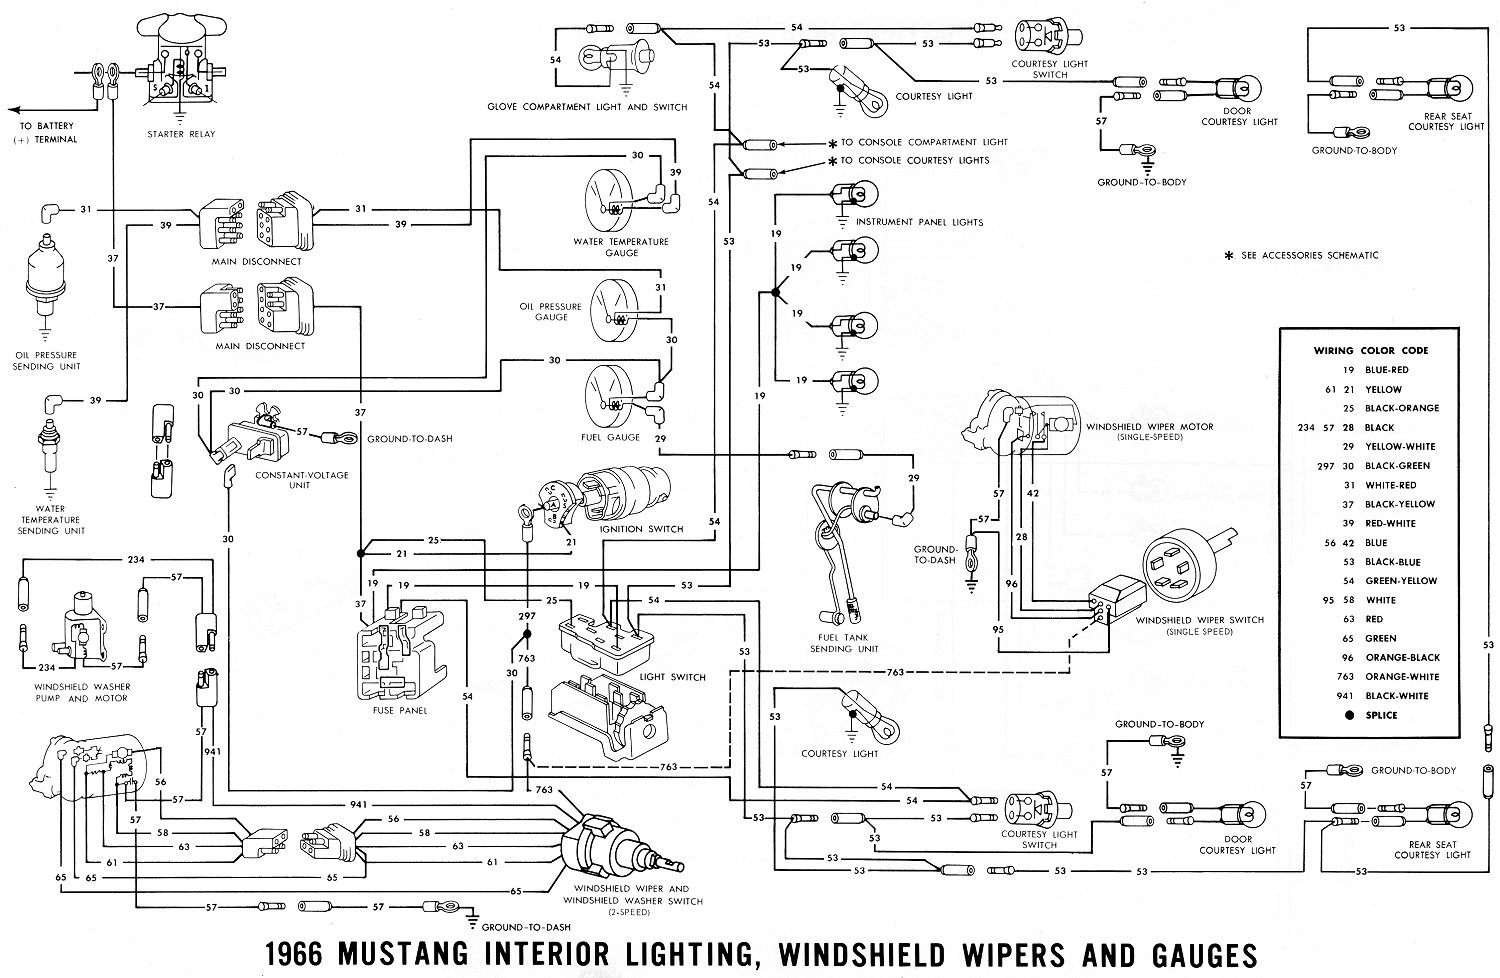 66 mustang ignition wiring diagram photoelectric switch 1966 diagrams average joe restoration schematic